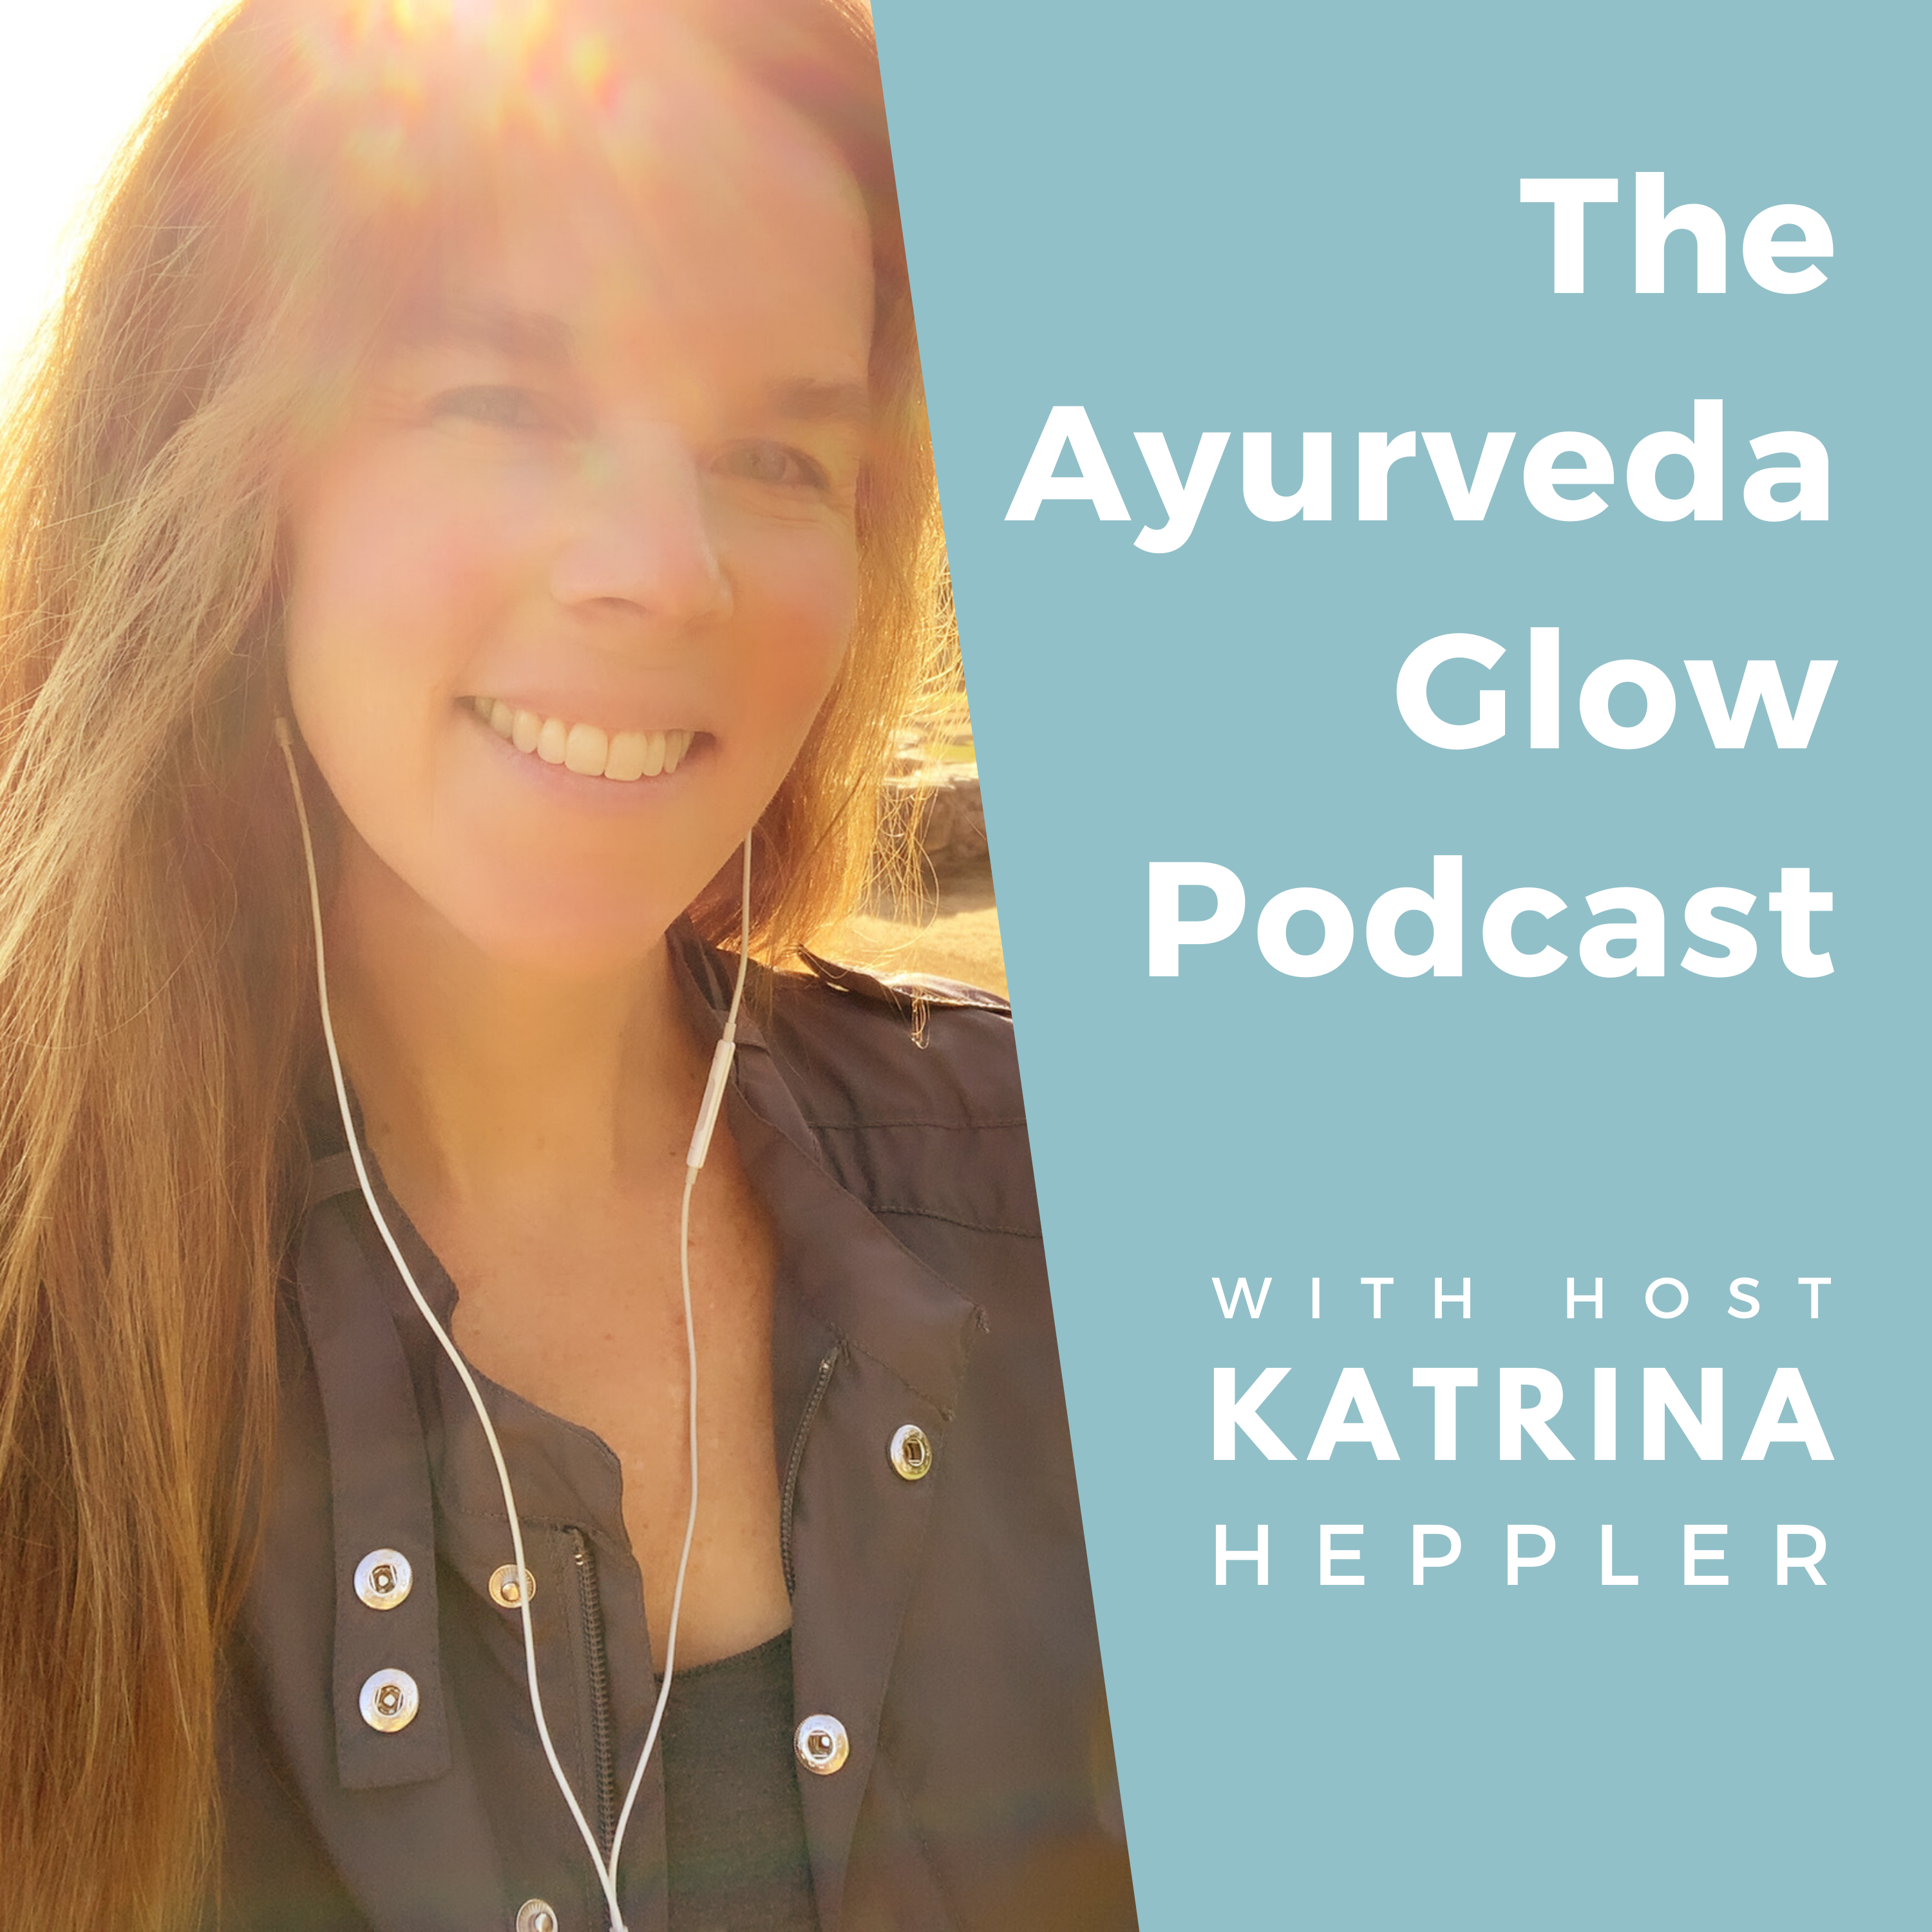 Artwork for 001: Welcome to The Ayurveda Glow Podcast with Katrina